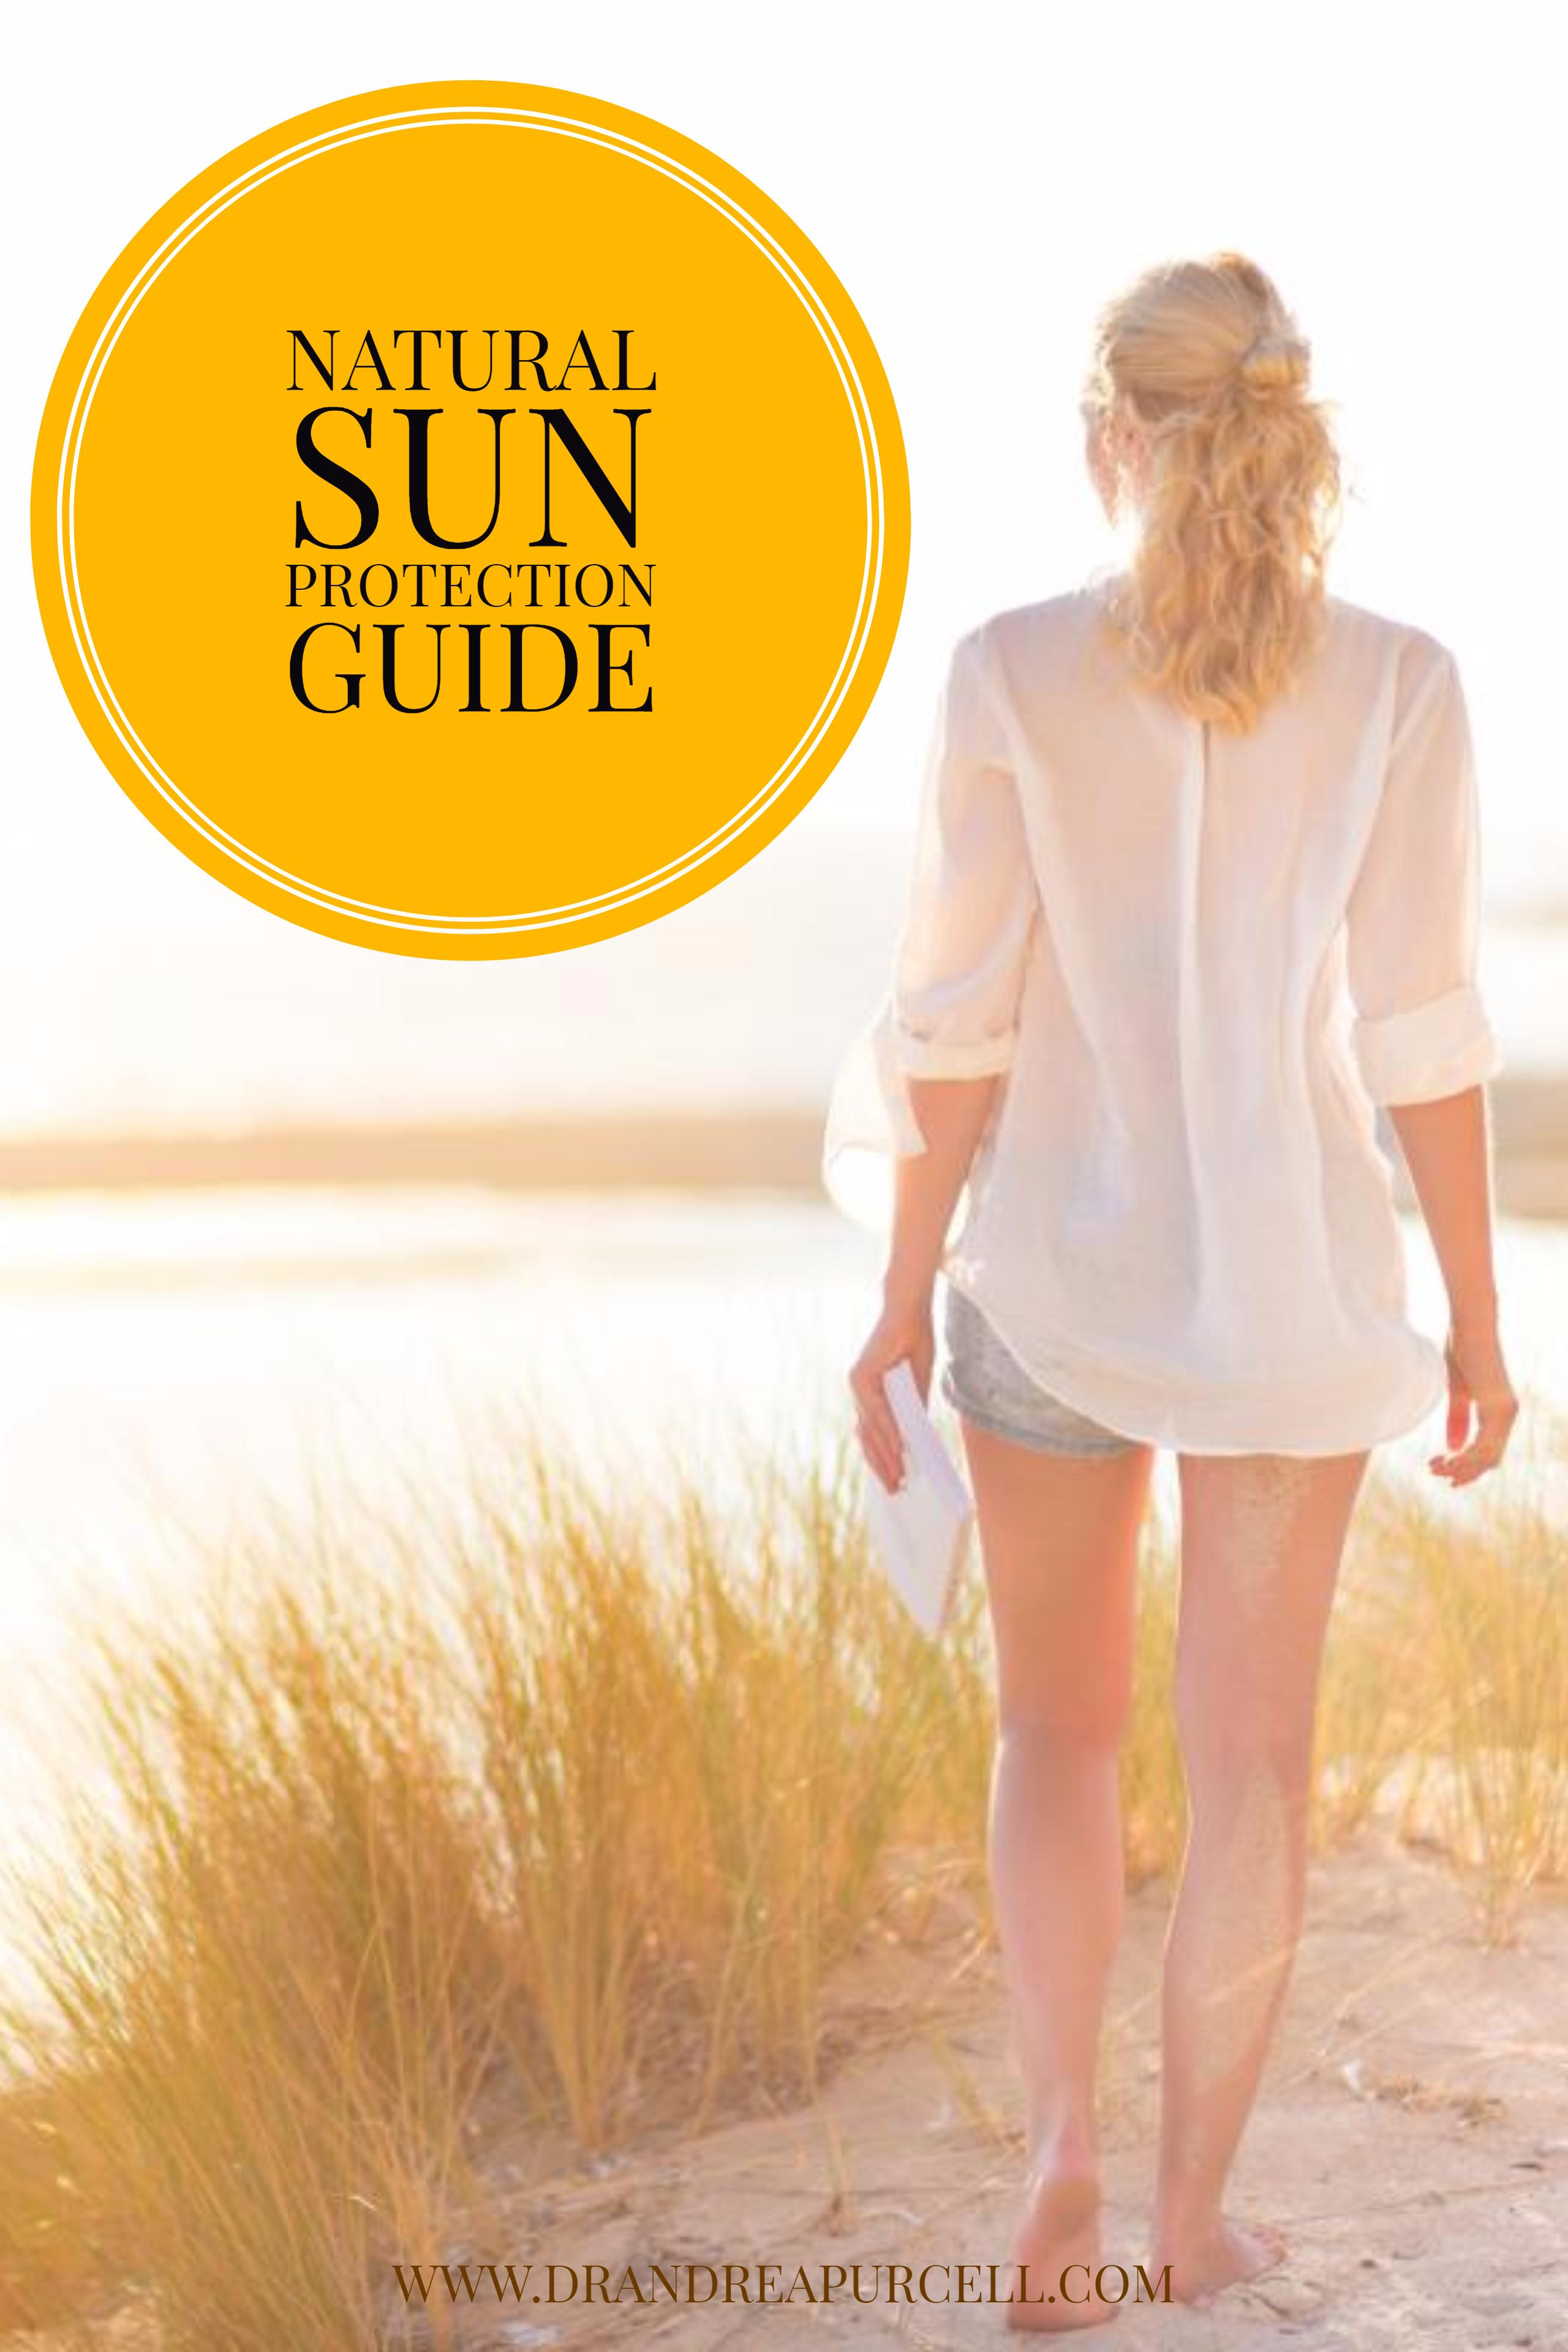 Dr. Purcell's Top 4 Sun Protection Tips for Summer